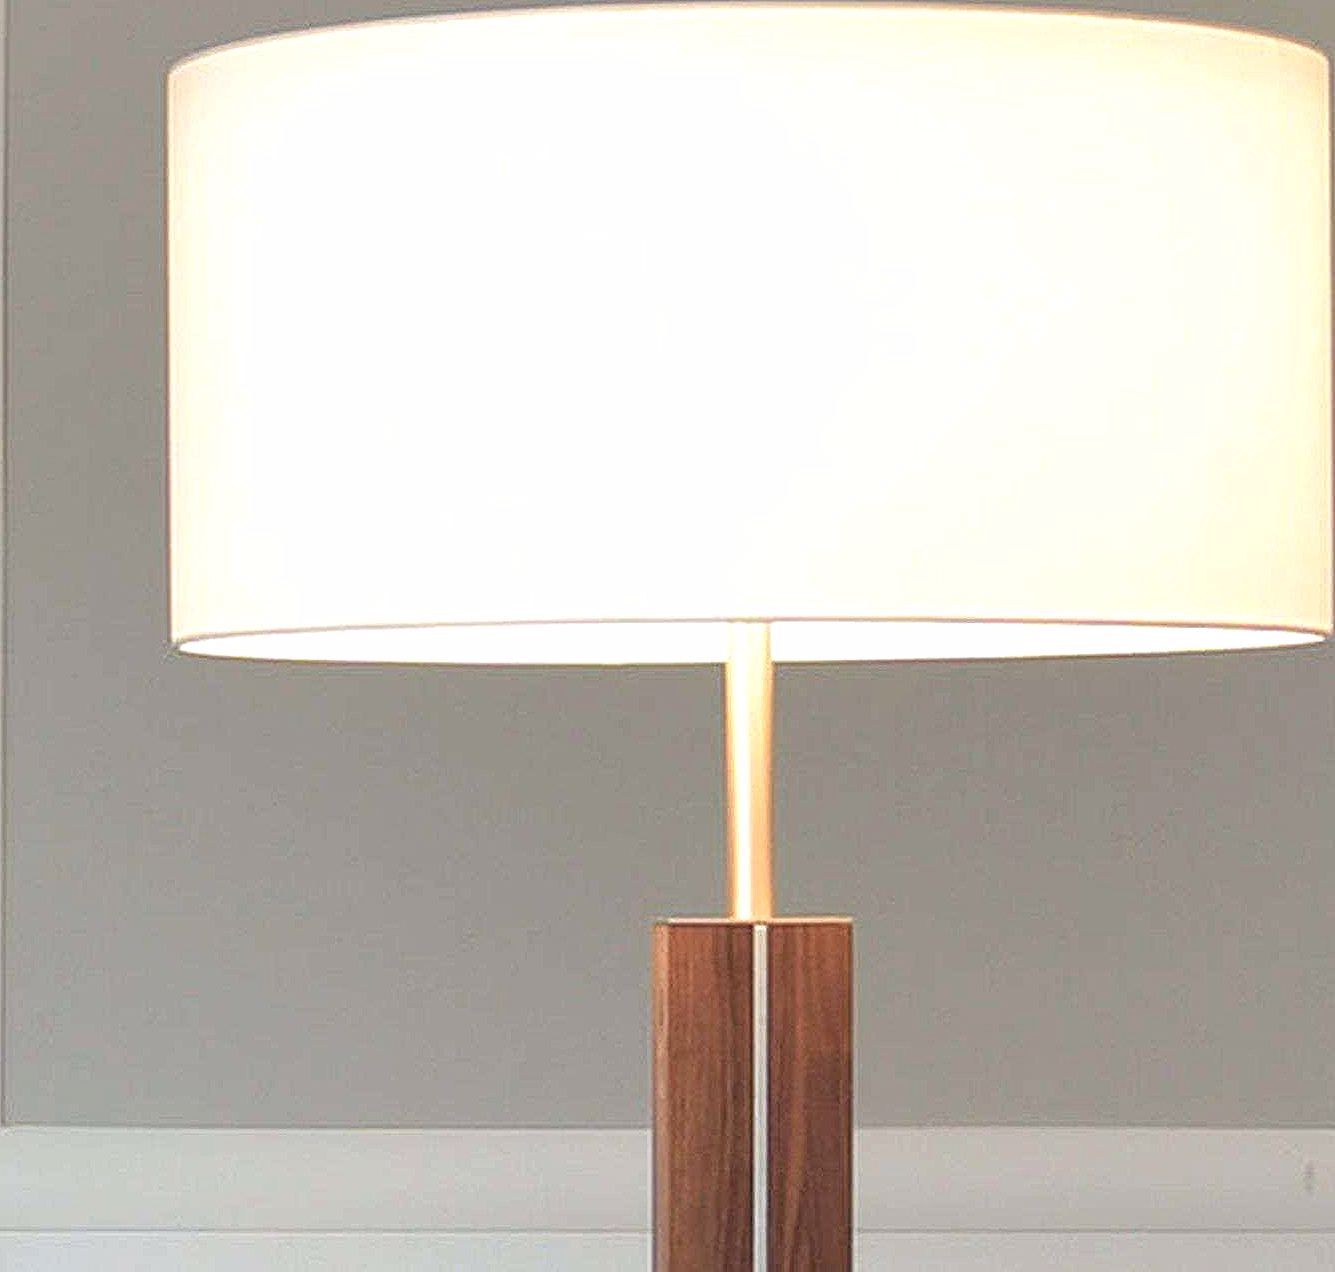 Moderne Stehlampe Dana Von Herzblut Braun Lamp Table Lamp Home Decor